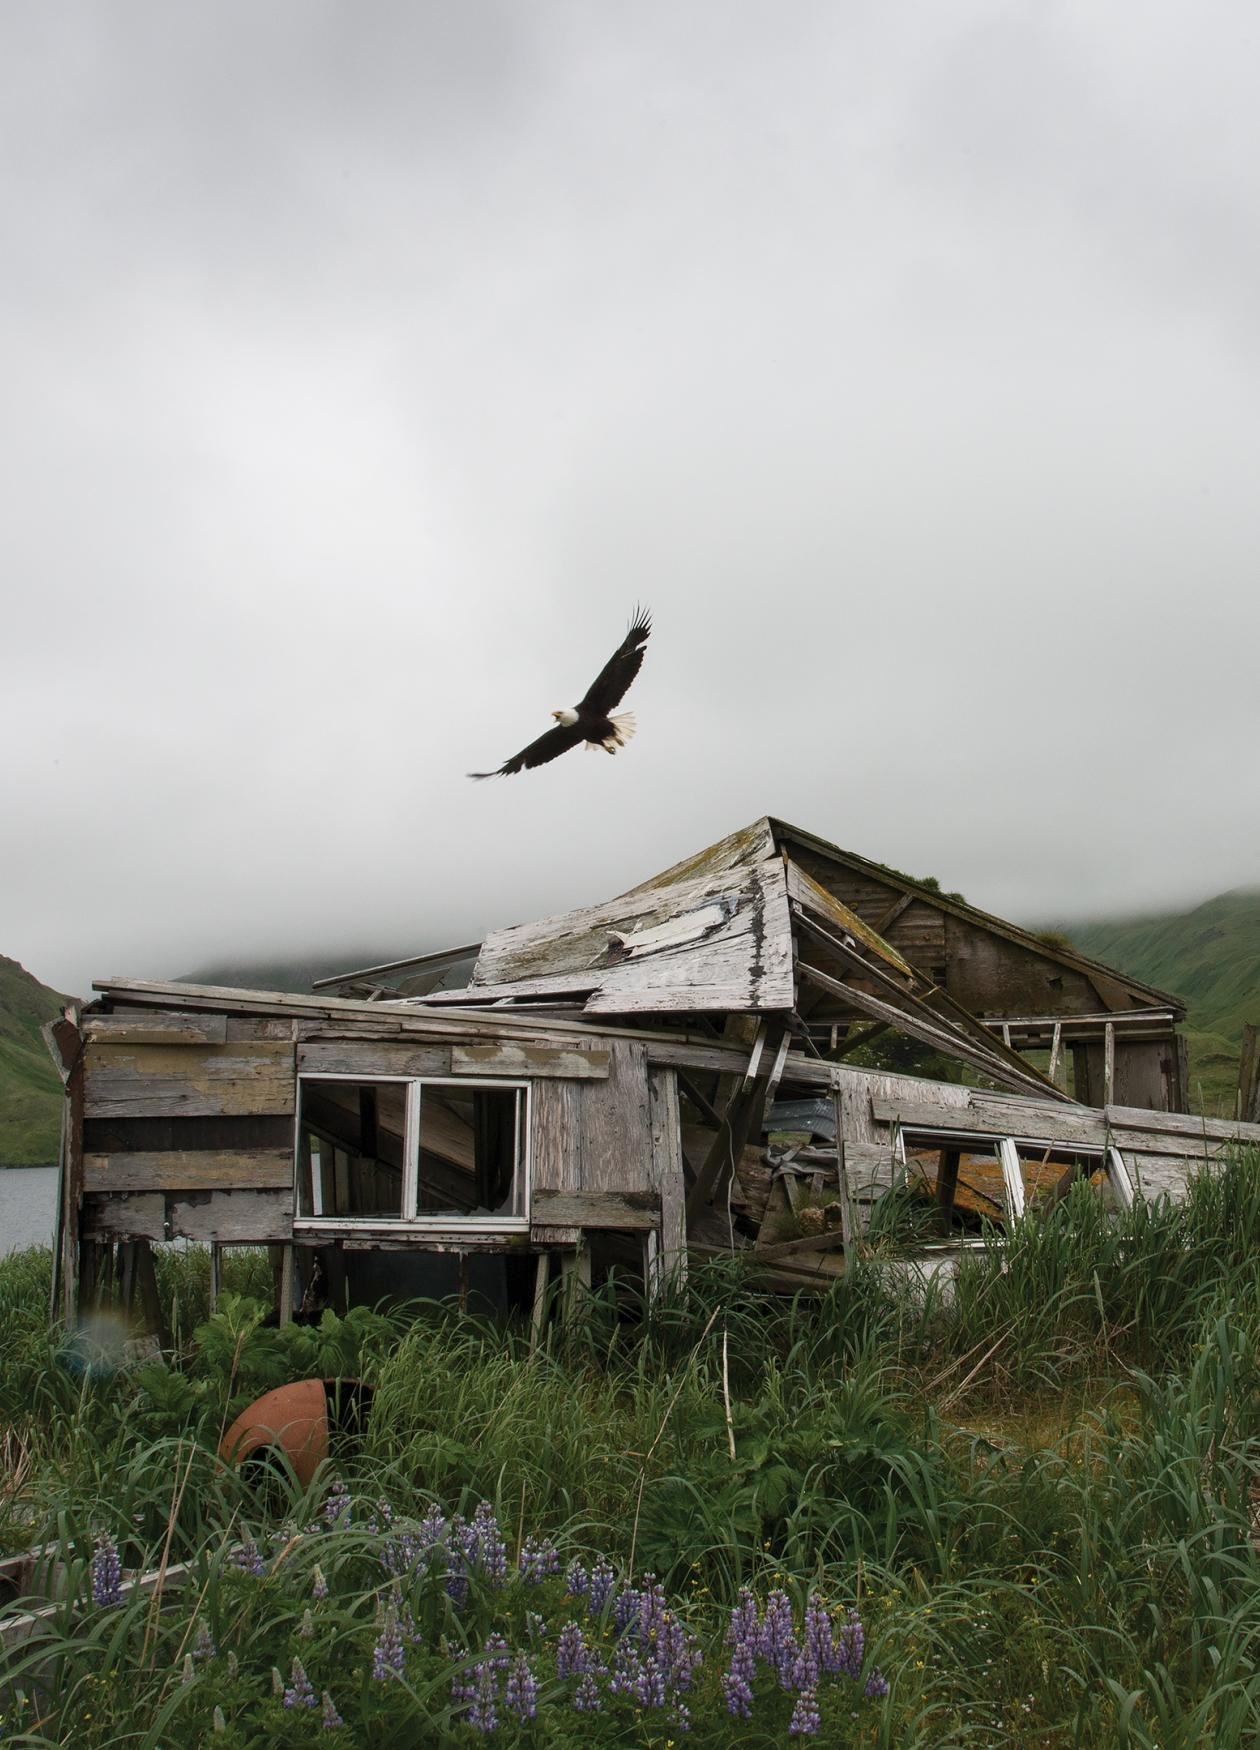 Photograph of cloudy sky in background, destroyed house in foreground